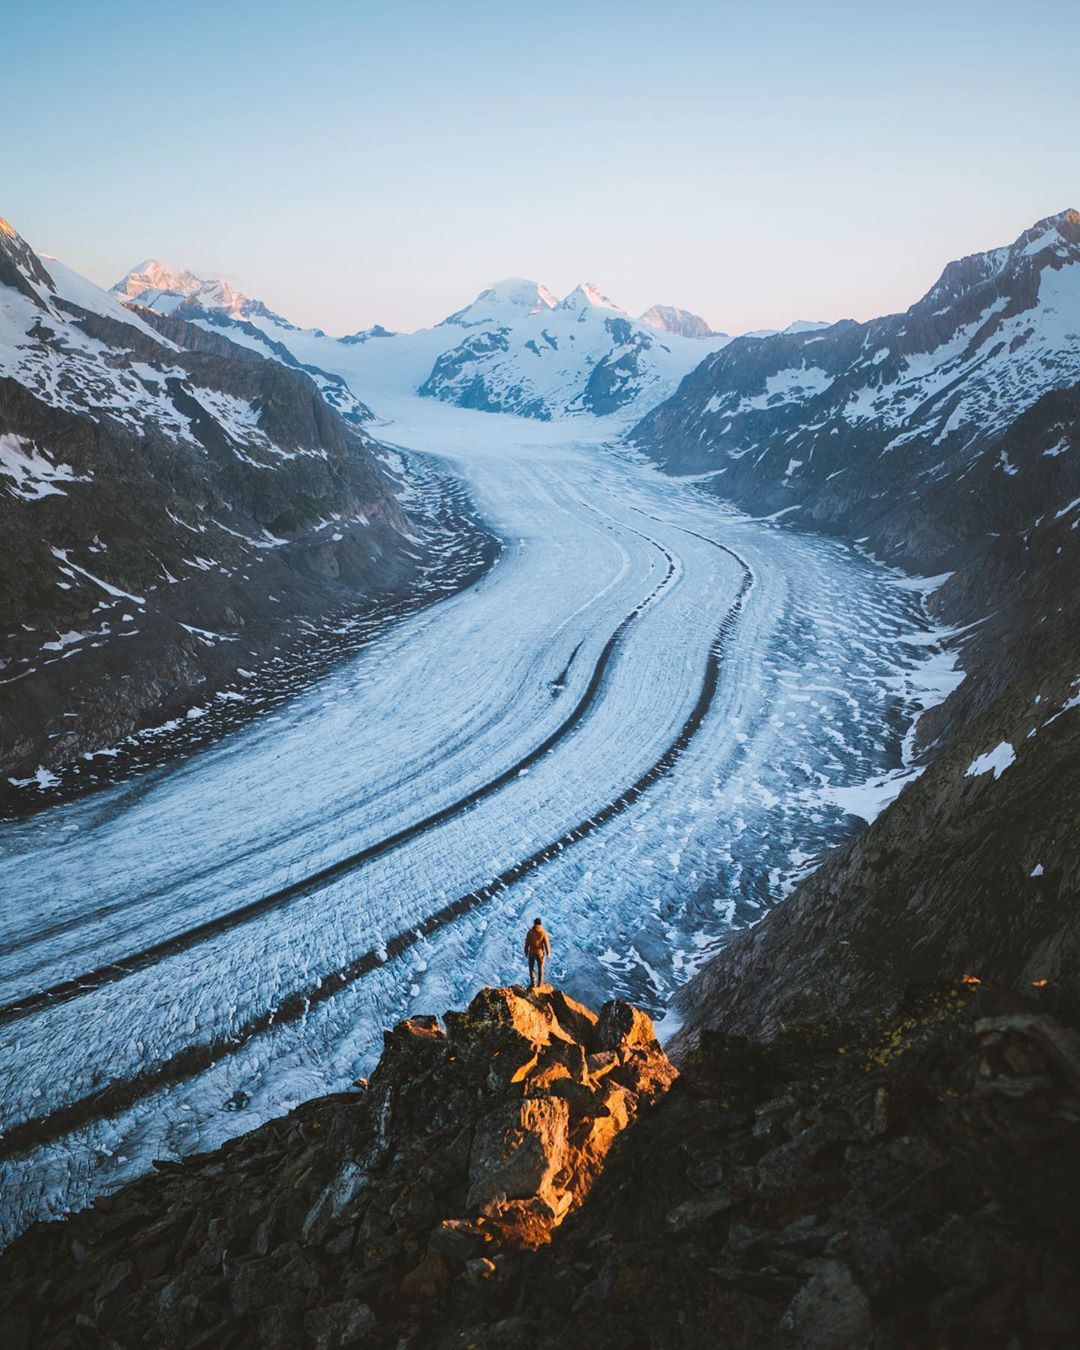 Aletsch glacier at sunrise with a man standing in front of it